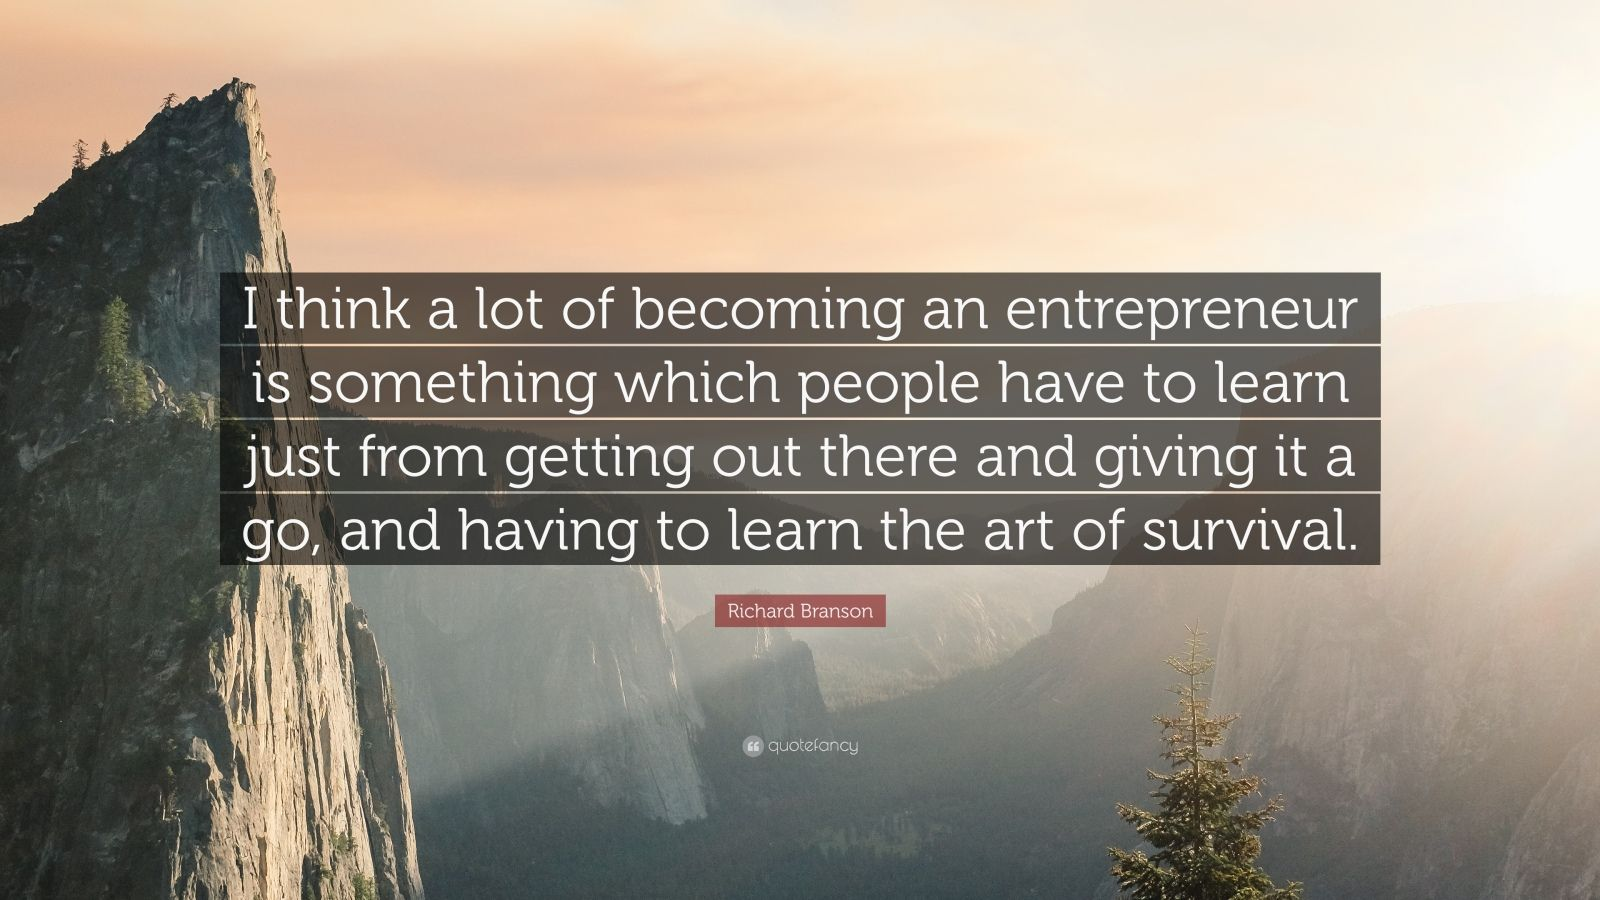 """Richard Branson Quote: """"I think a lot of becoming an entrepreneur is something which people have to learn just from getting out there and giving it a go, and having to learn the art of survival."""""""